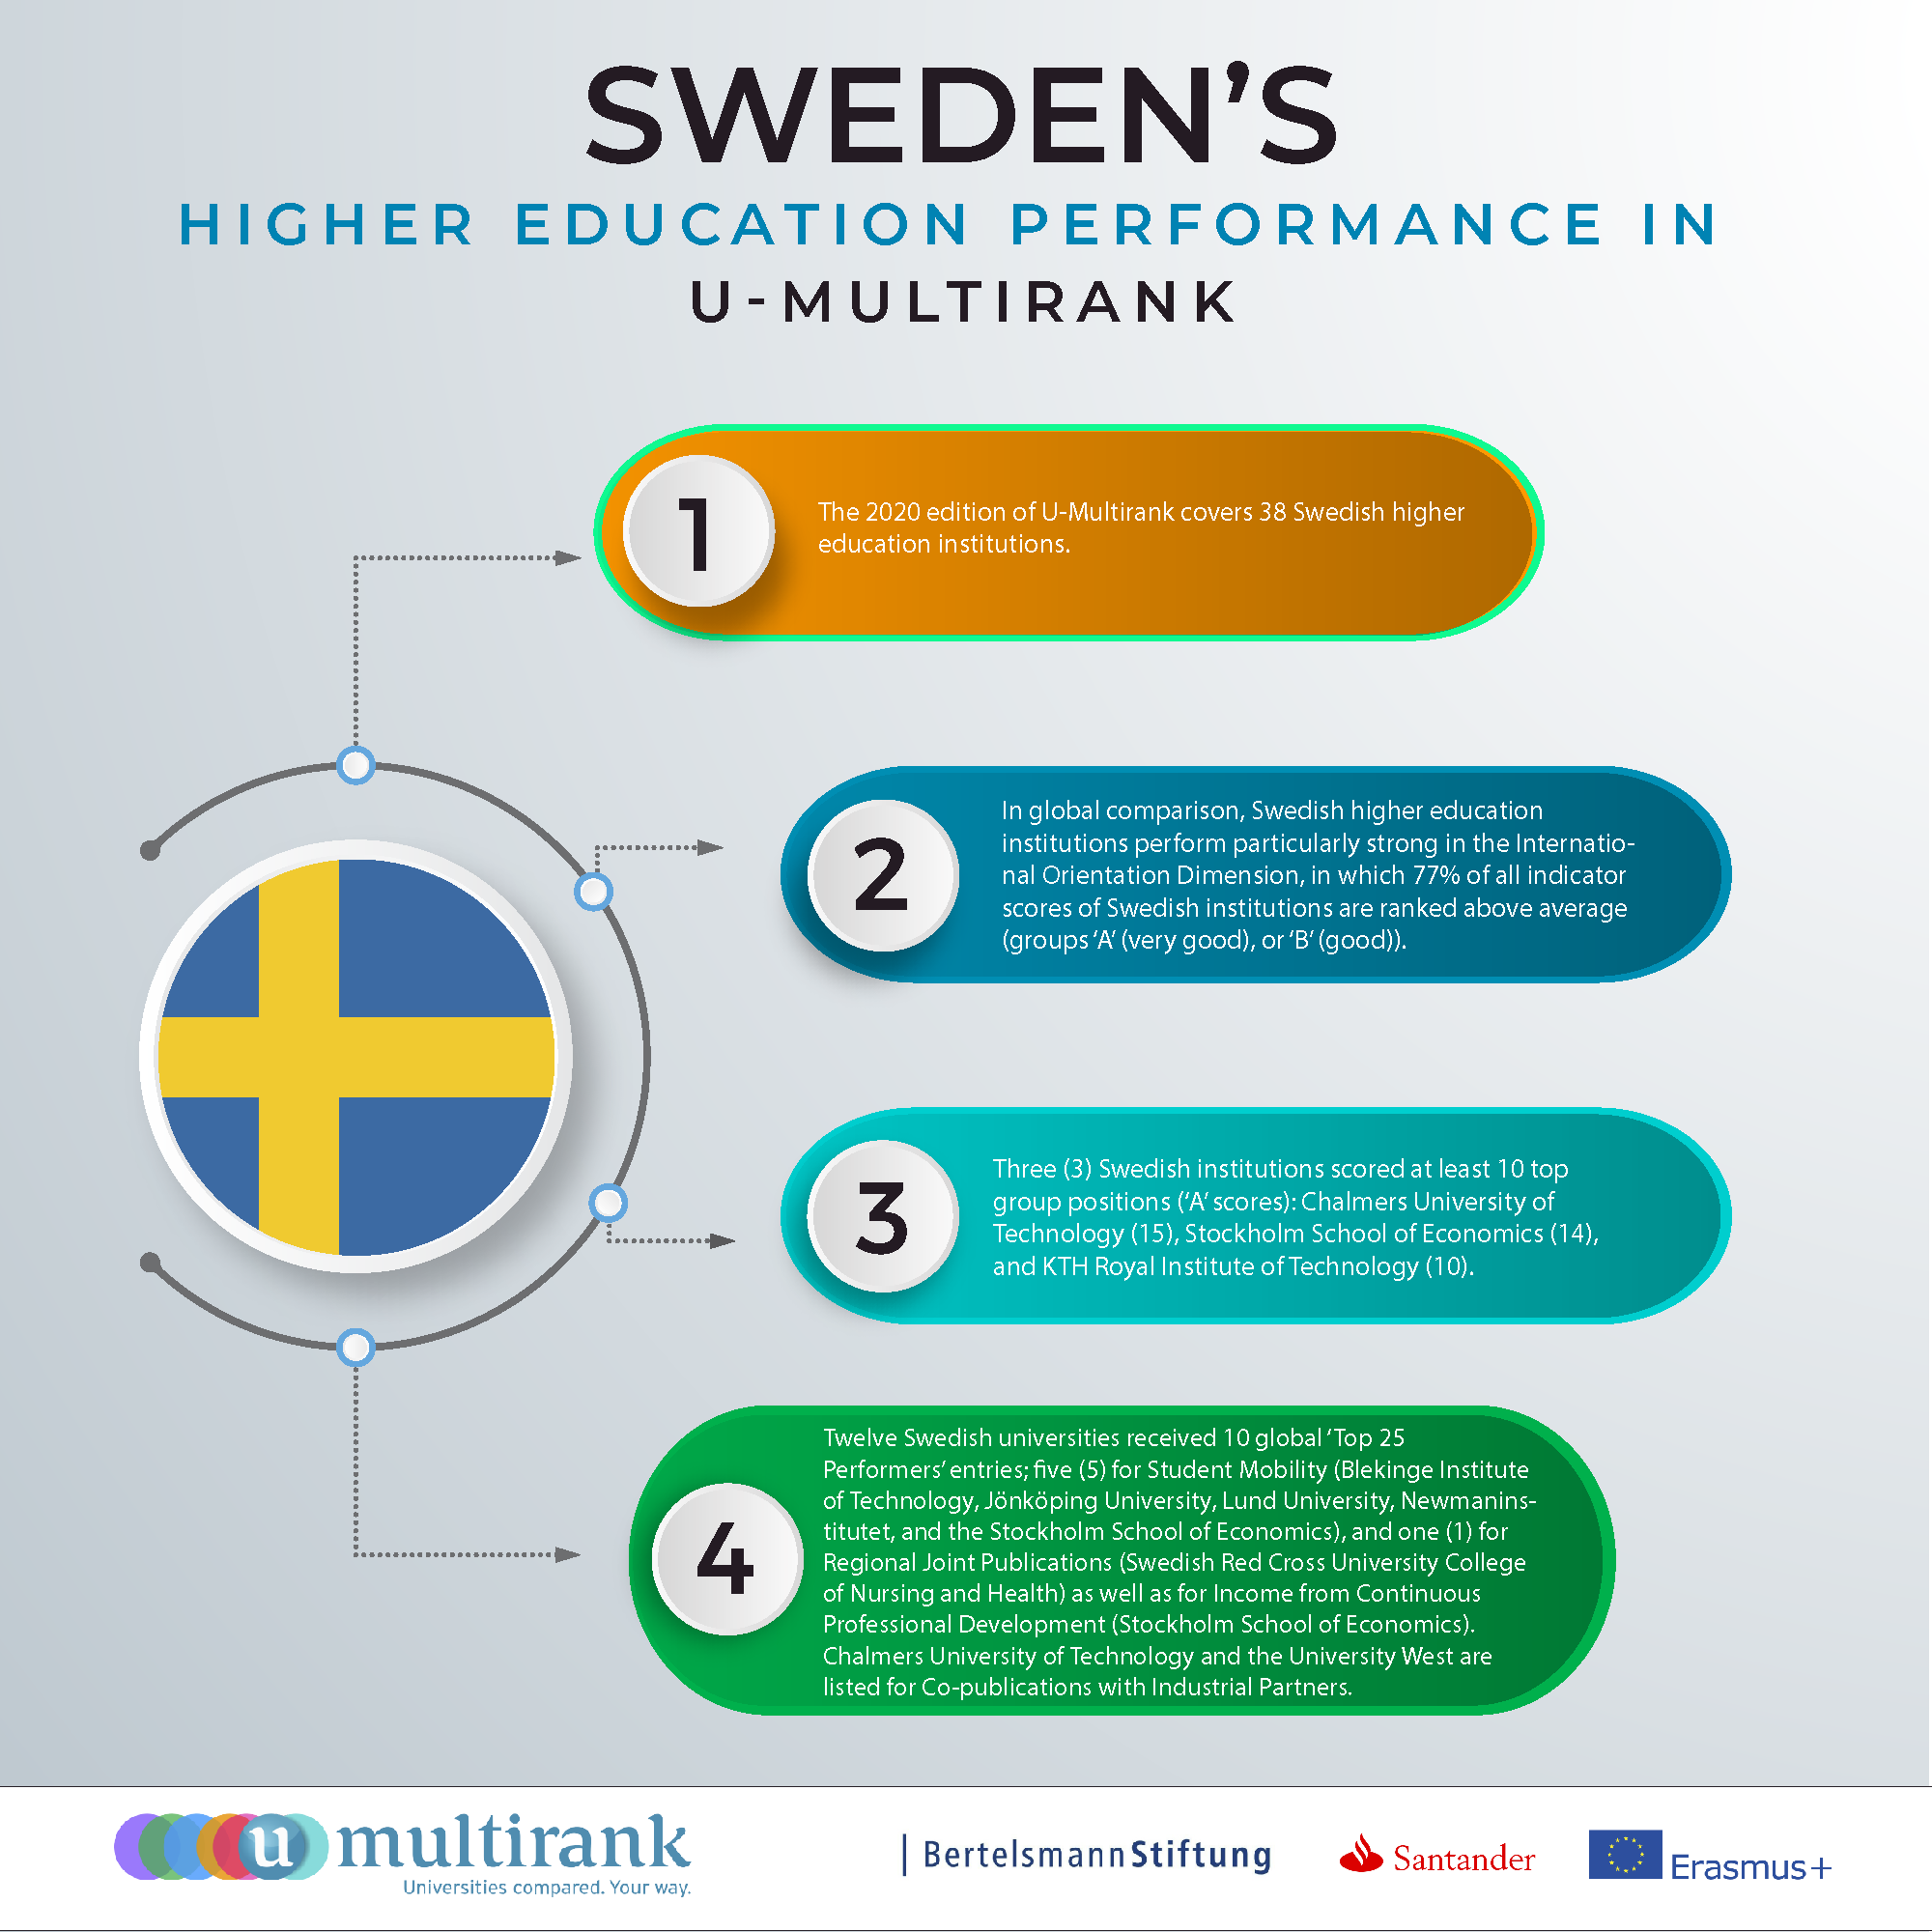 Sweden's Higher Education Performance in U-Multirank